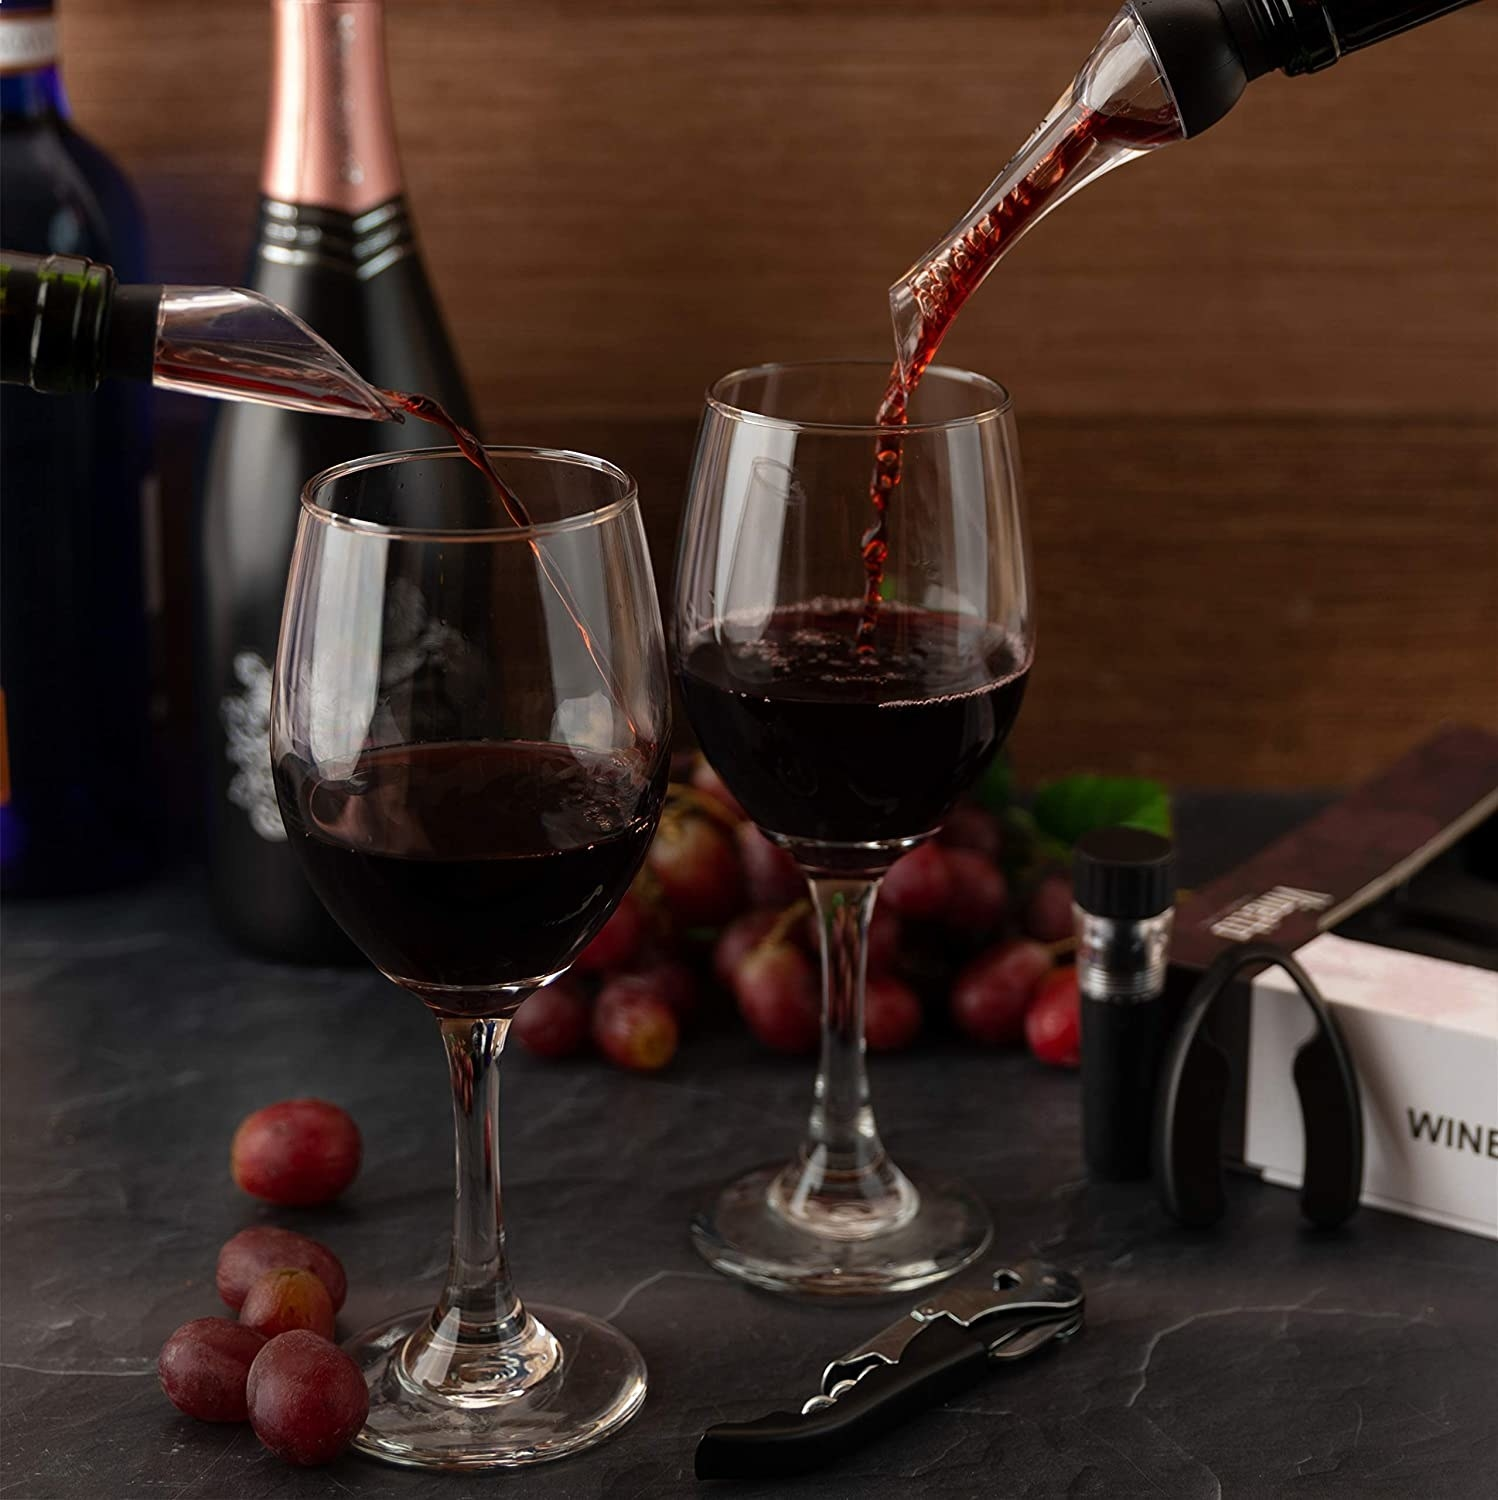 A bottle of wine with an aerator on it pours wine into a glass